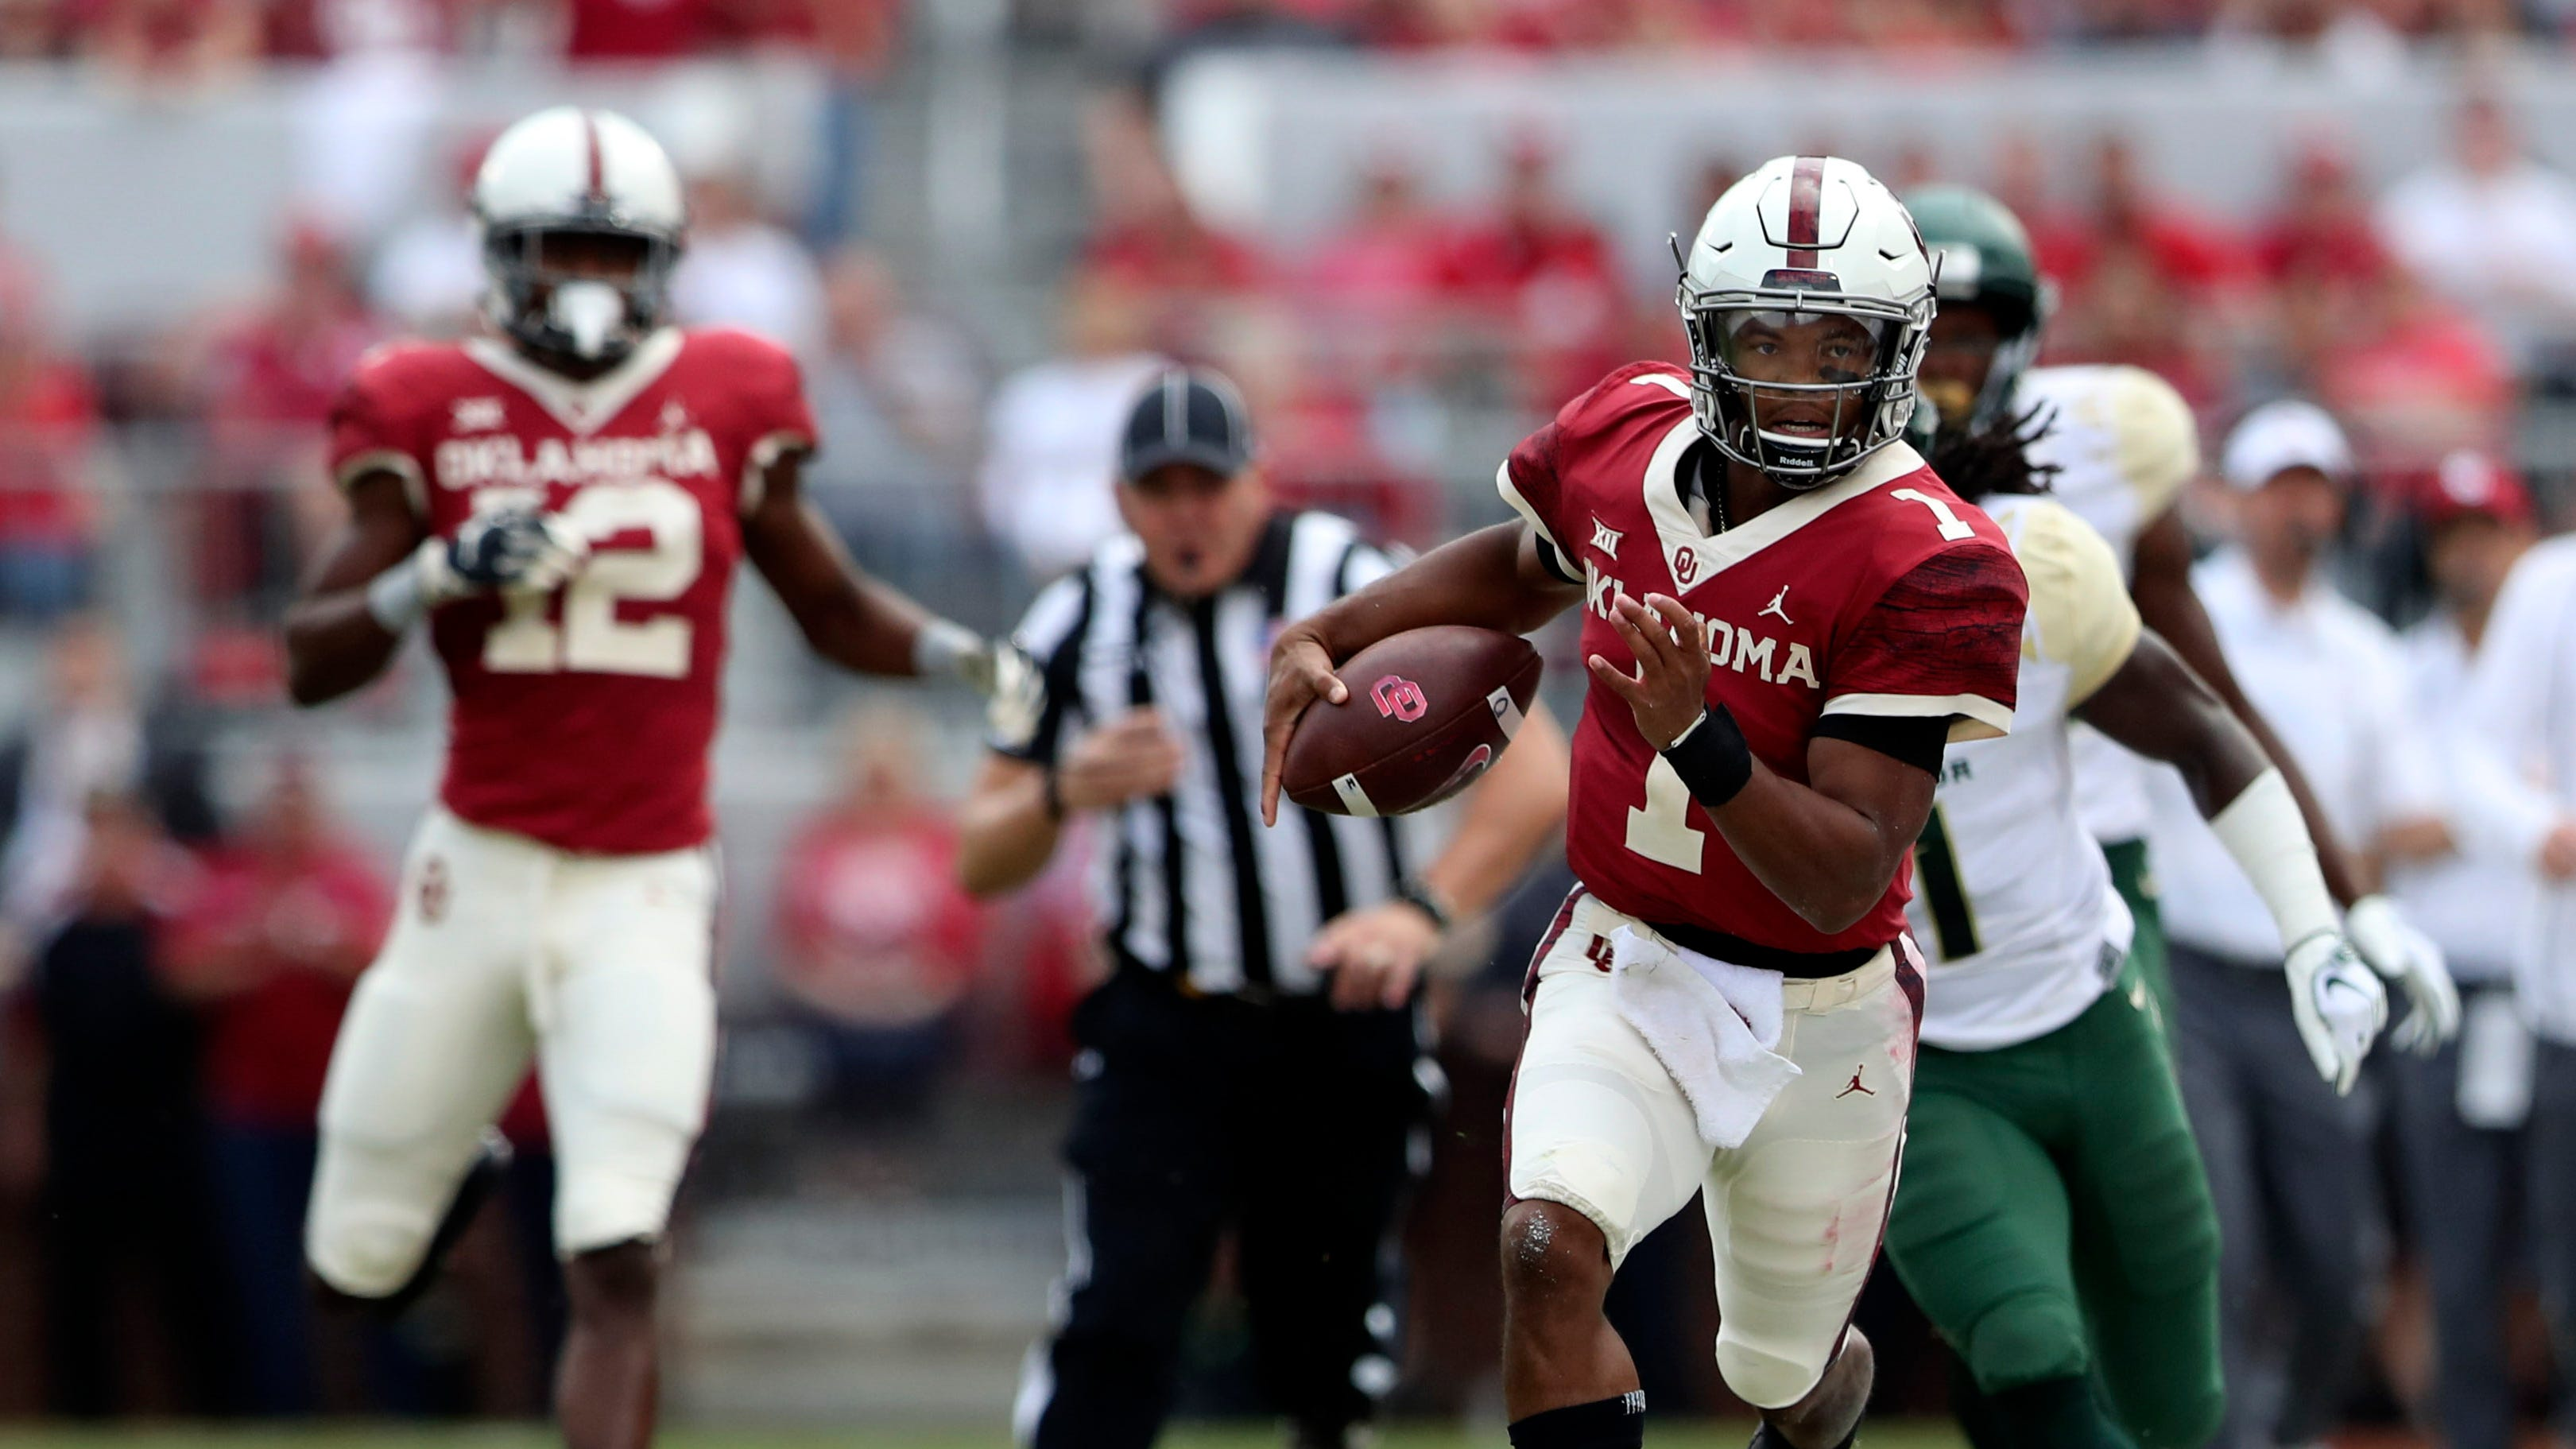 How To Watch Texas Oklahoma Football What Is The Game Time Tv